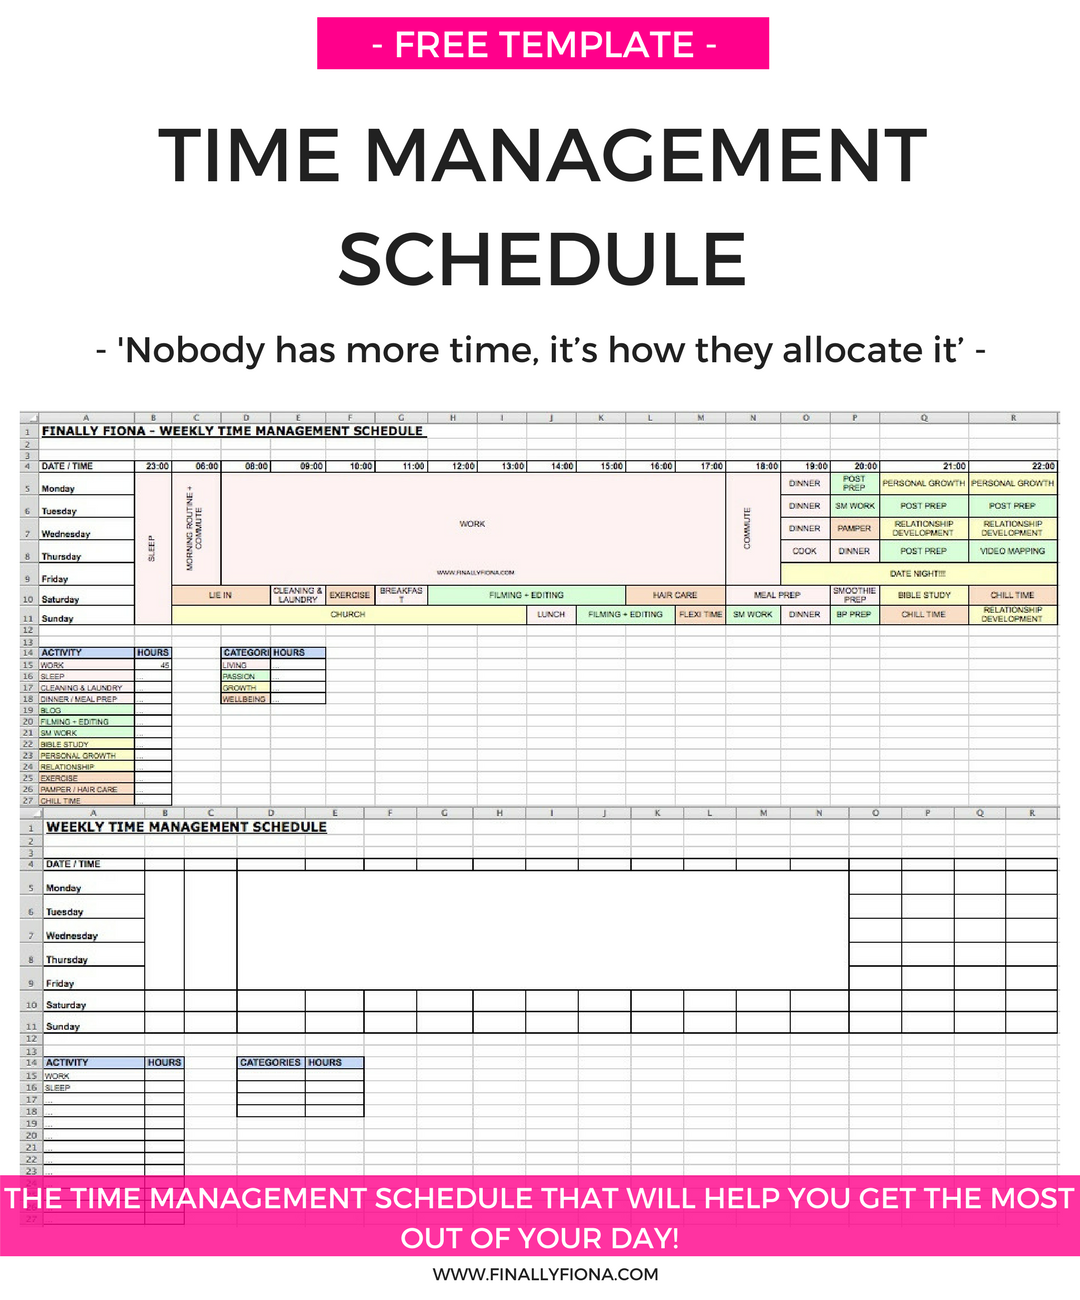 My Time Management Schedule Amp How I Get The Most Out Of Each Day Free Template